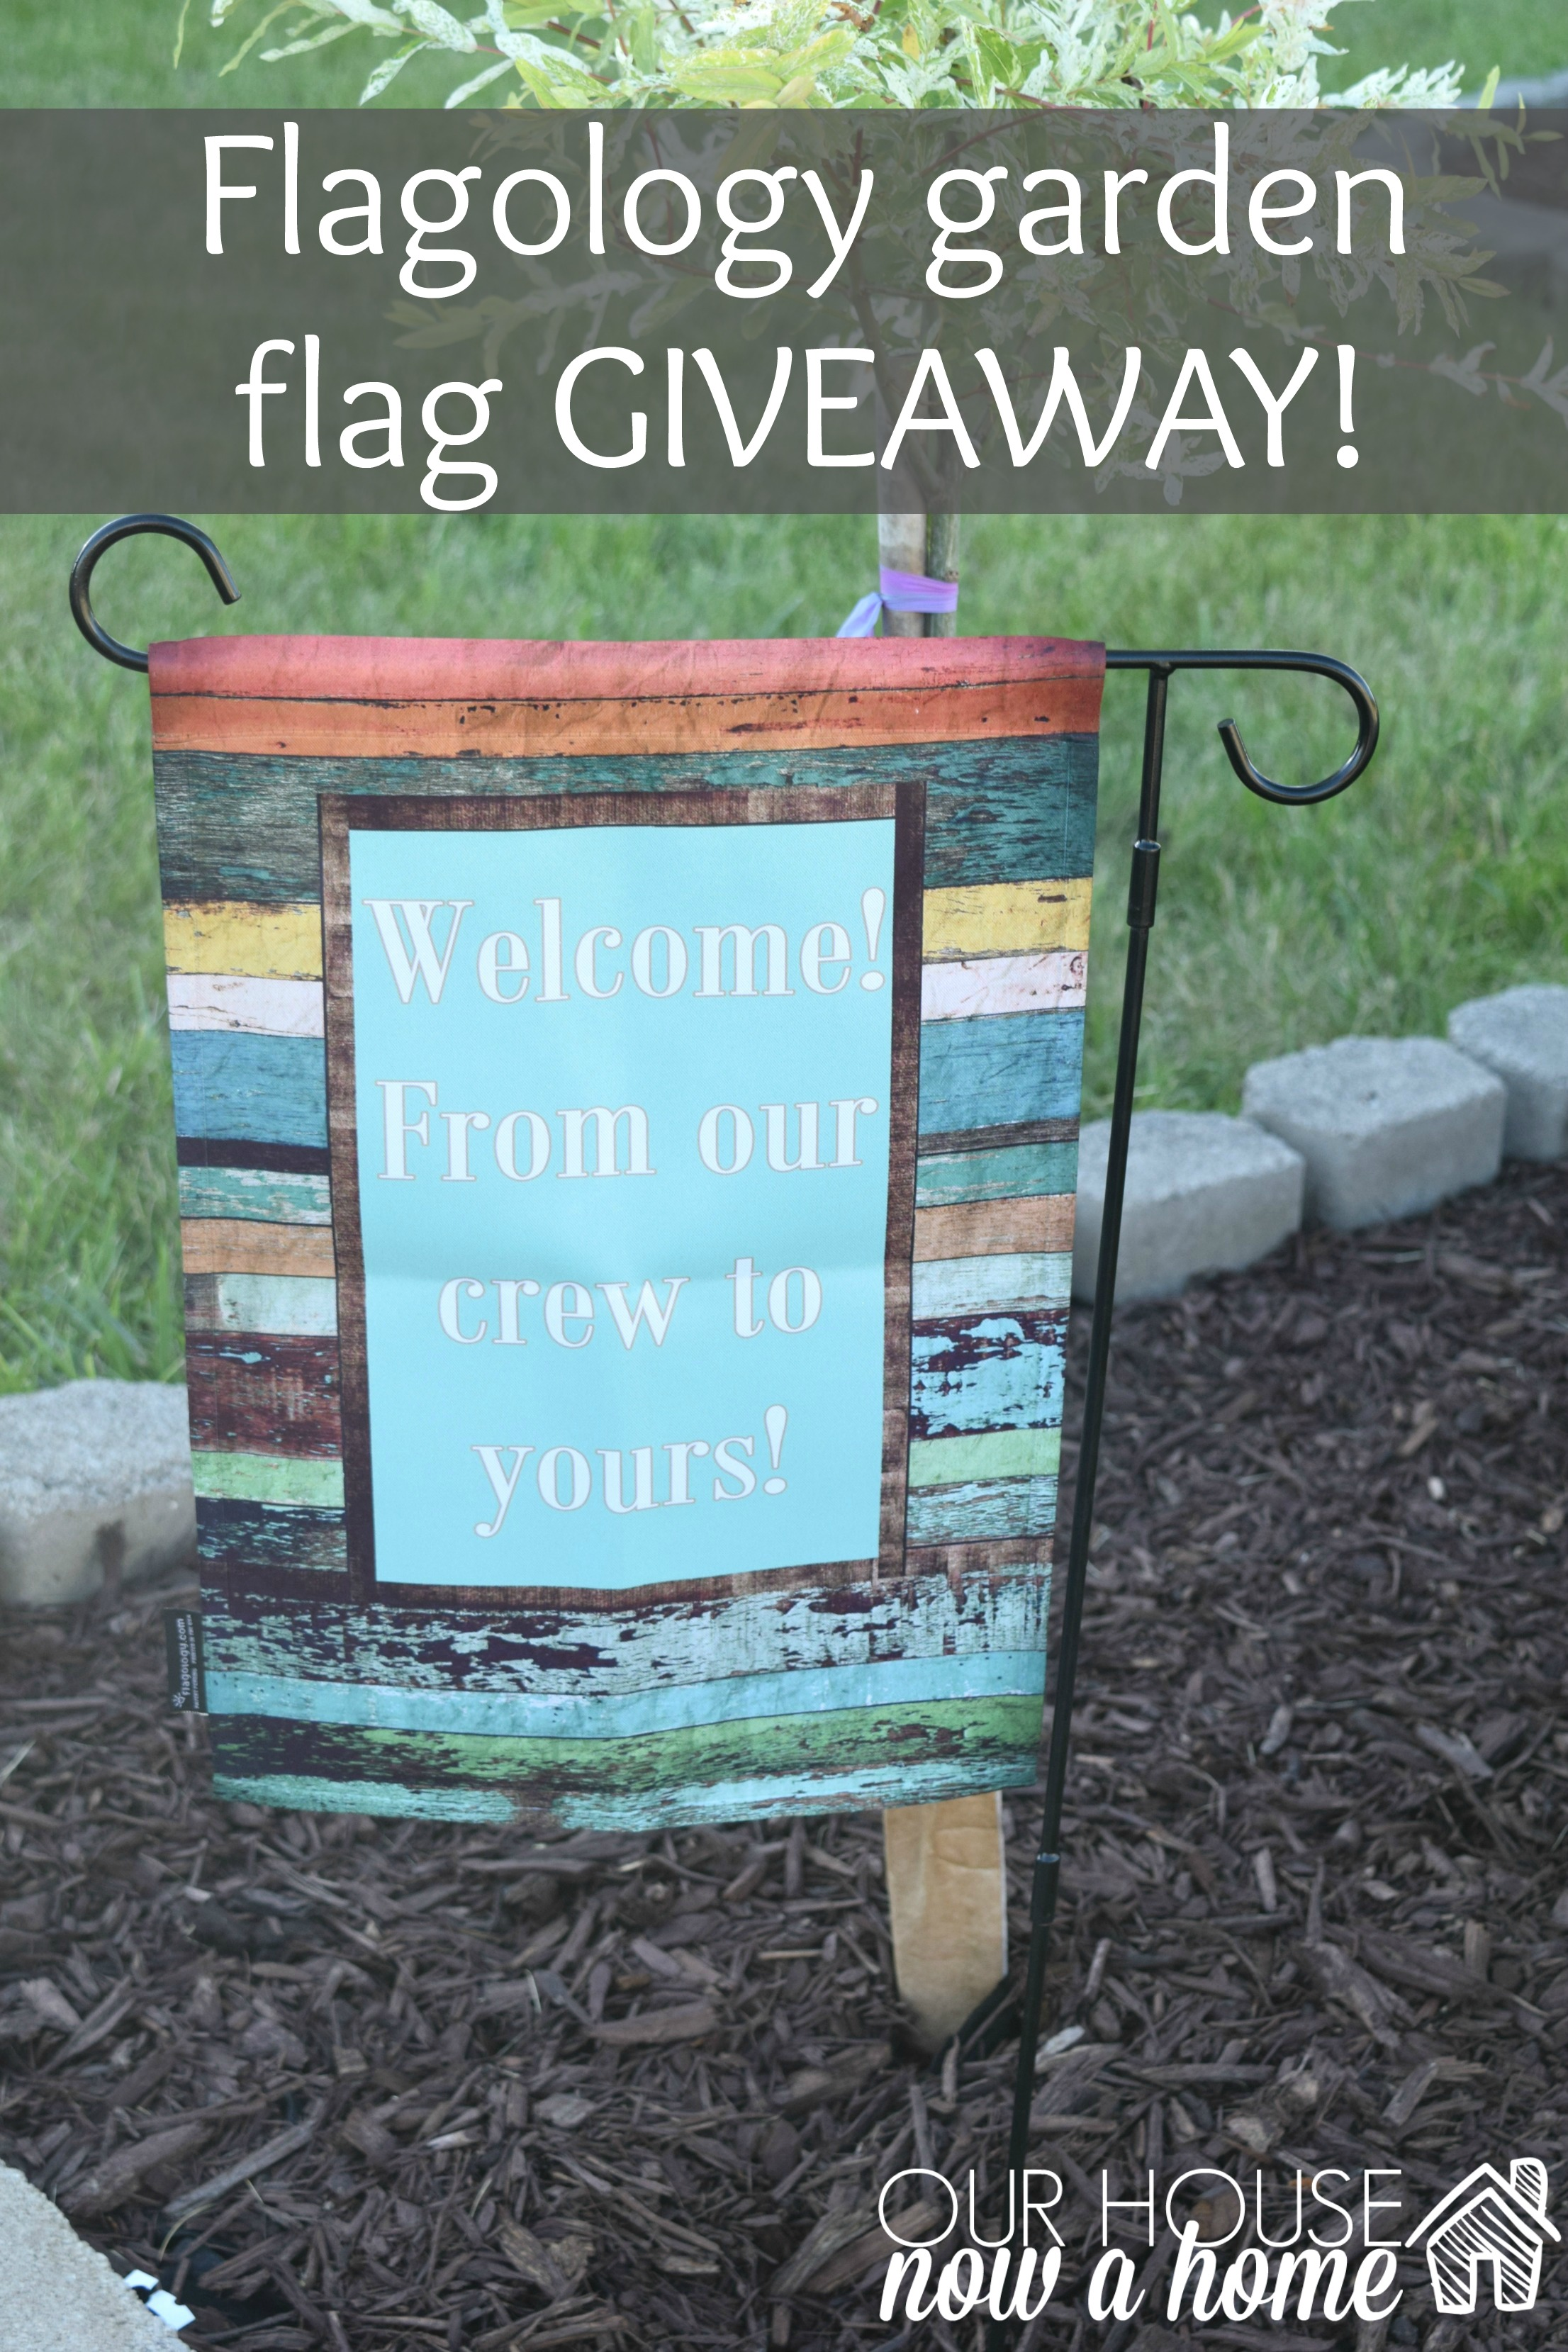 house and garden giveaway